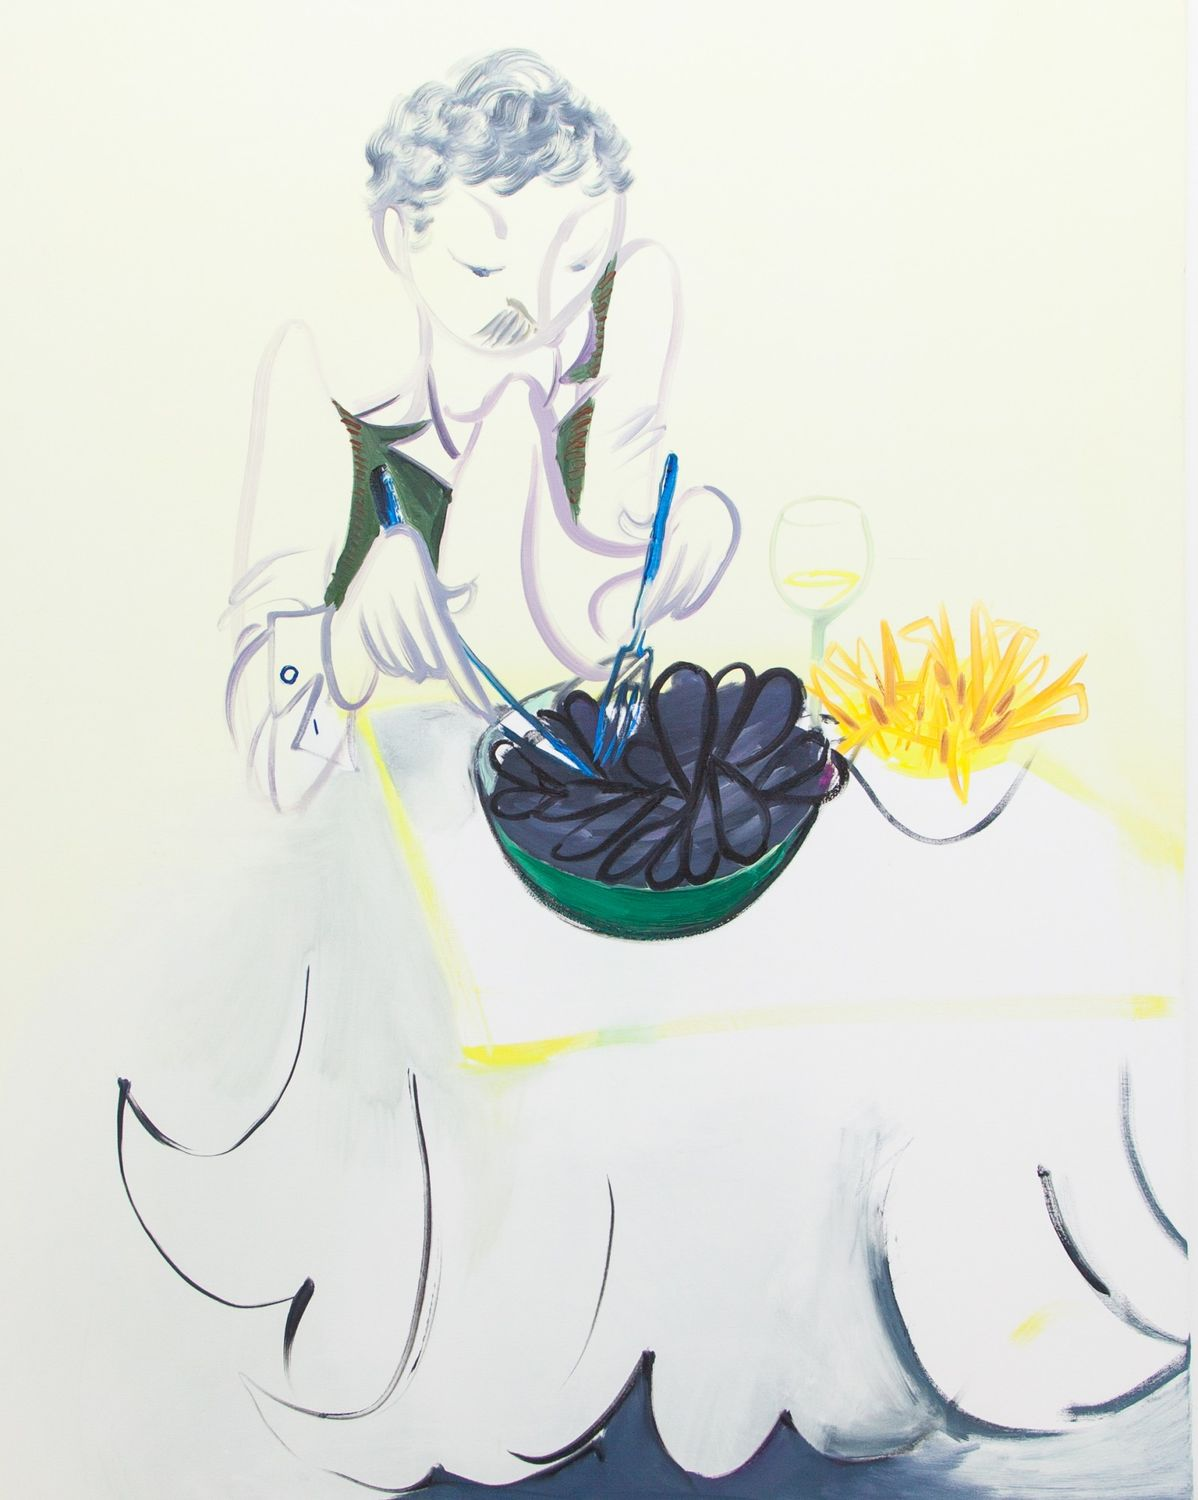 Mussels, 2016, 122 x 152 cm, oil on canvas